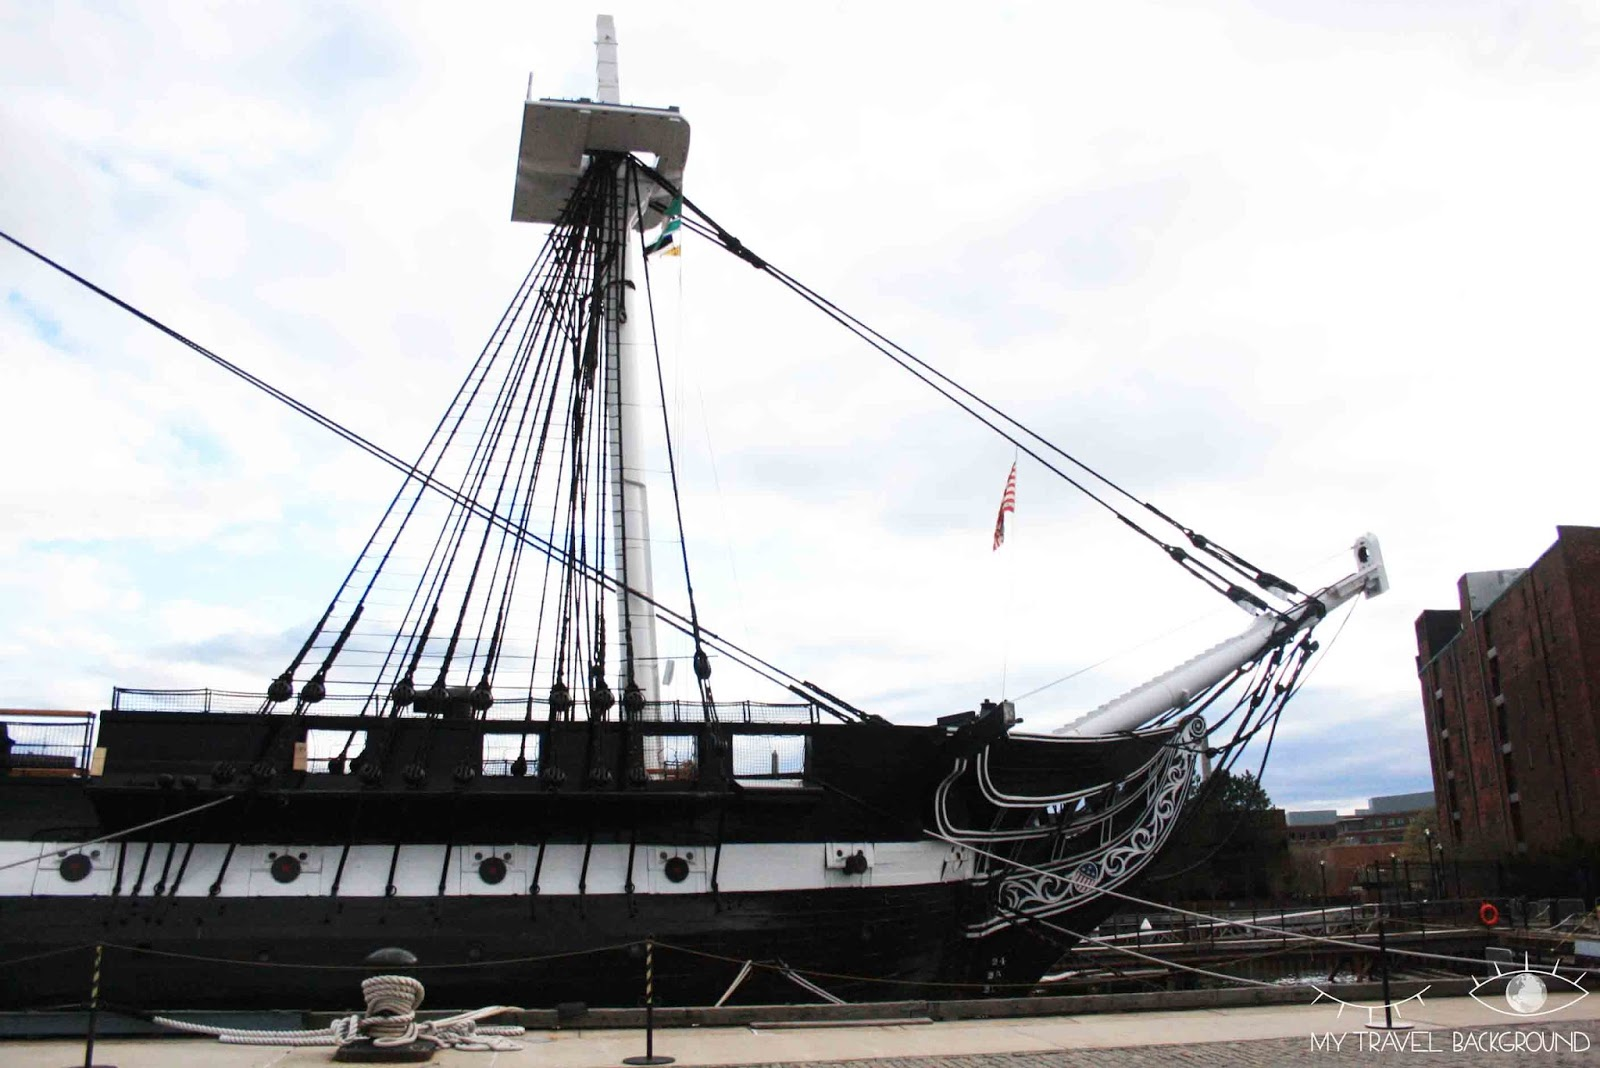 My Travel Background : USS Constitution